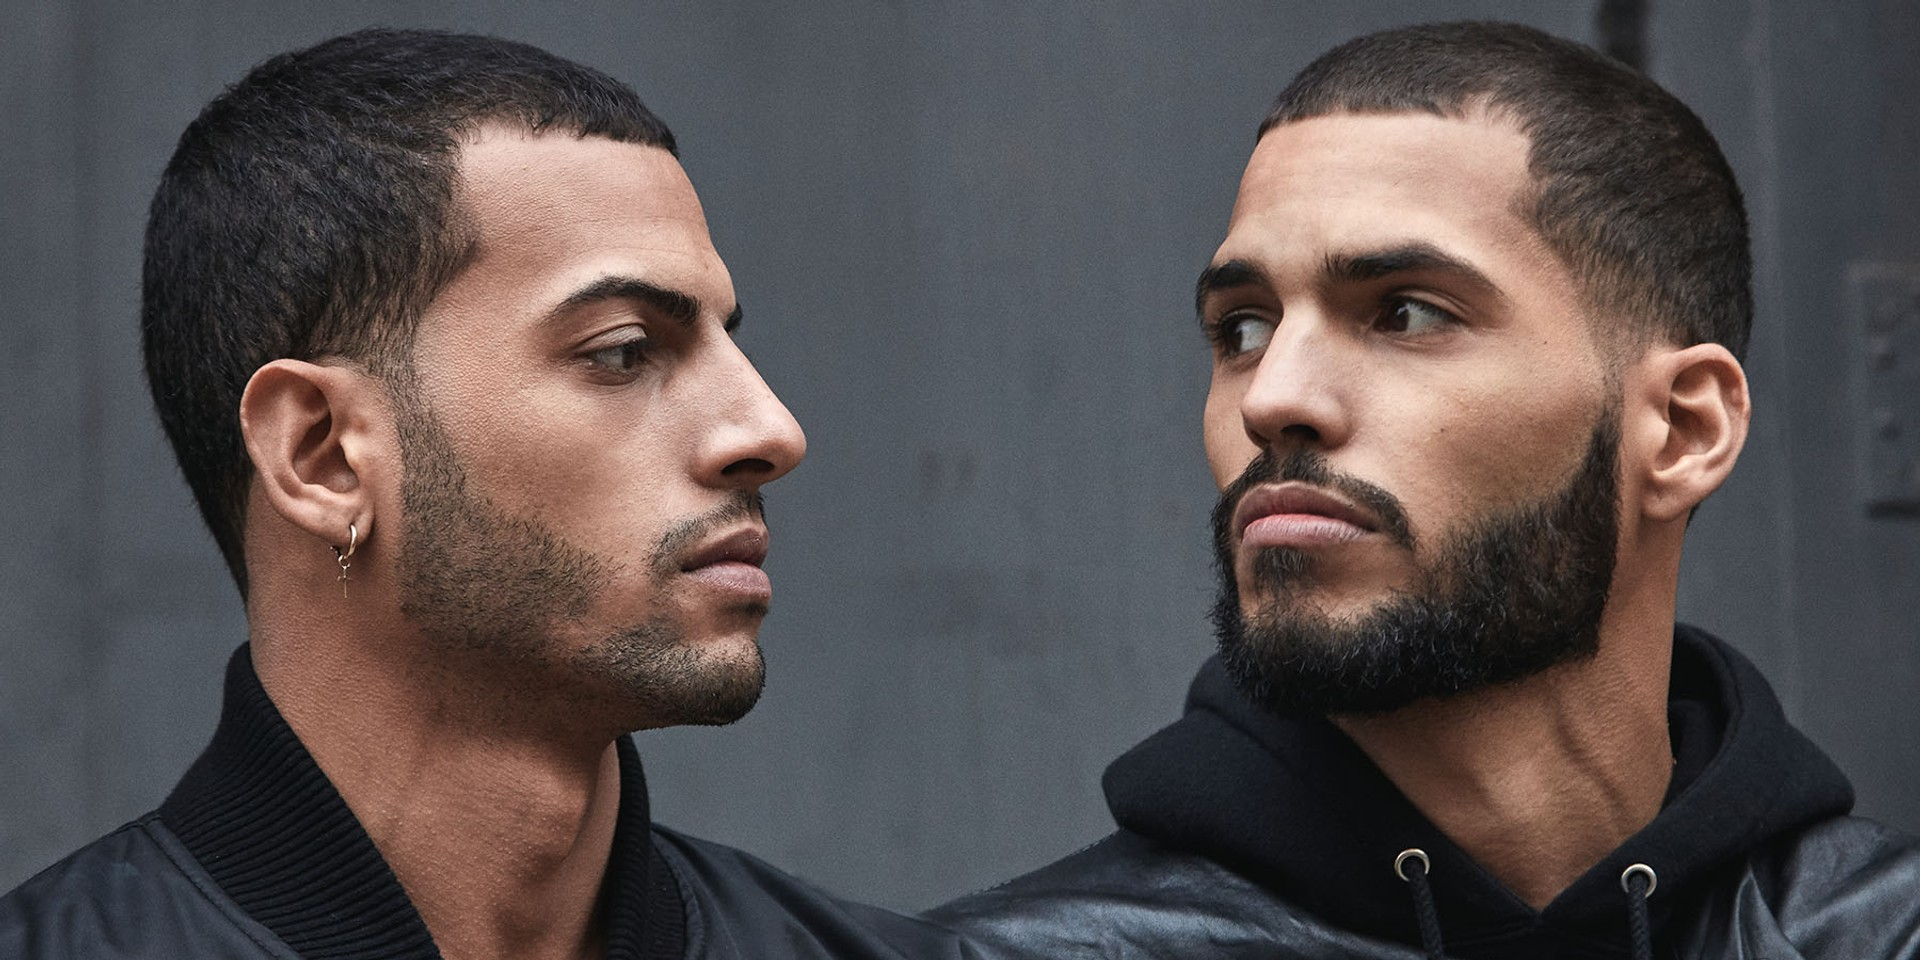 CERCLE to make Asia debut with The Martinez Brothers at CÉ LA VI Singapore this November